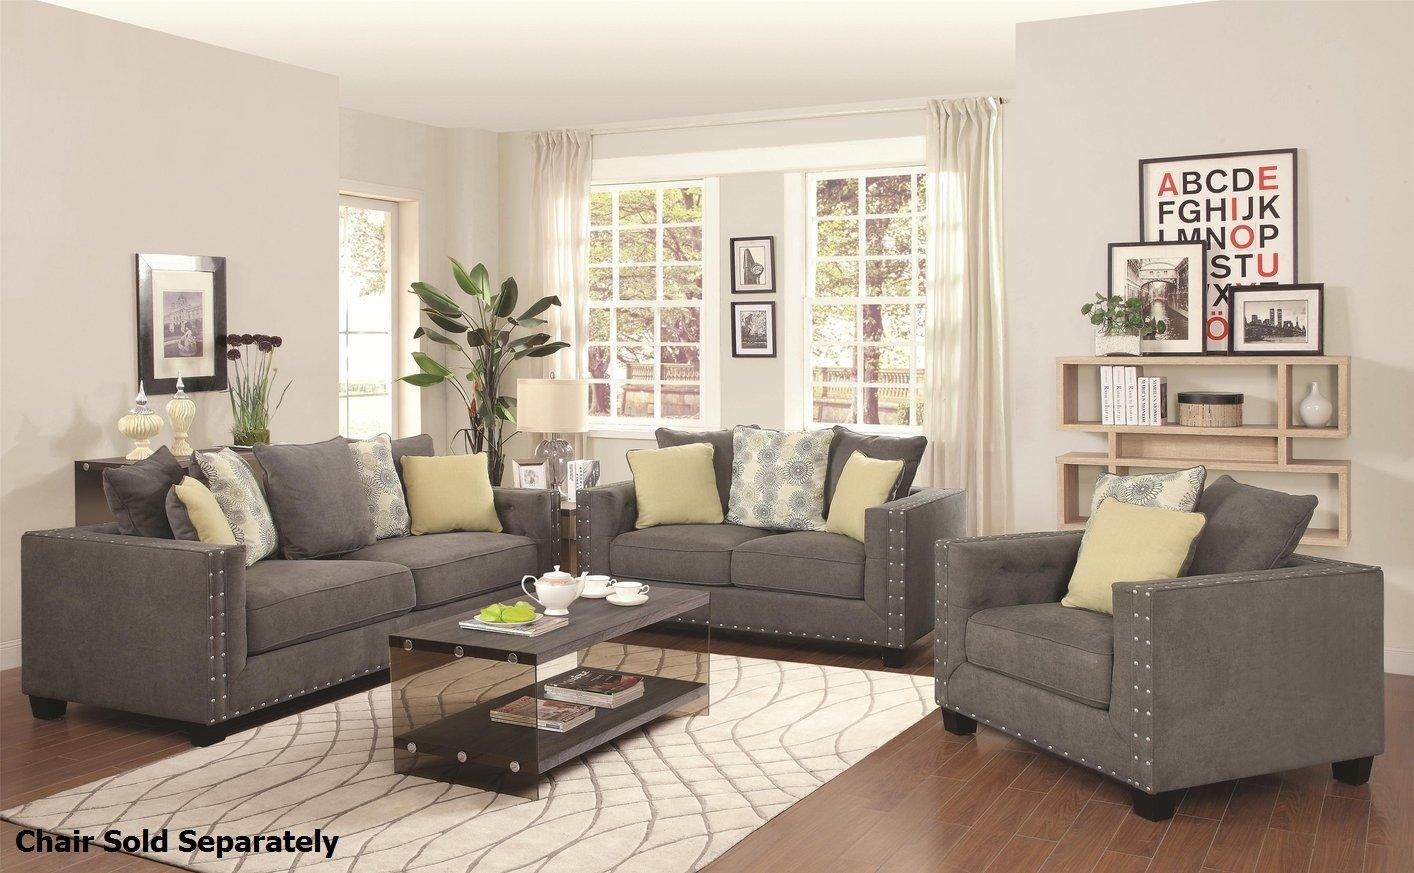 Luxury Sofa Loveseat Set 85 In Sofas And Couches Set With Sofa Pertaining To Living Room Sofa And Chair Sets (Image 14 of 20)